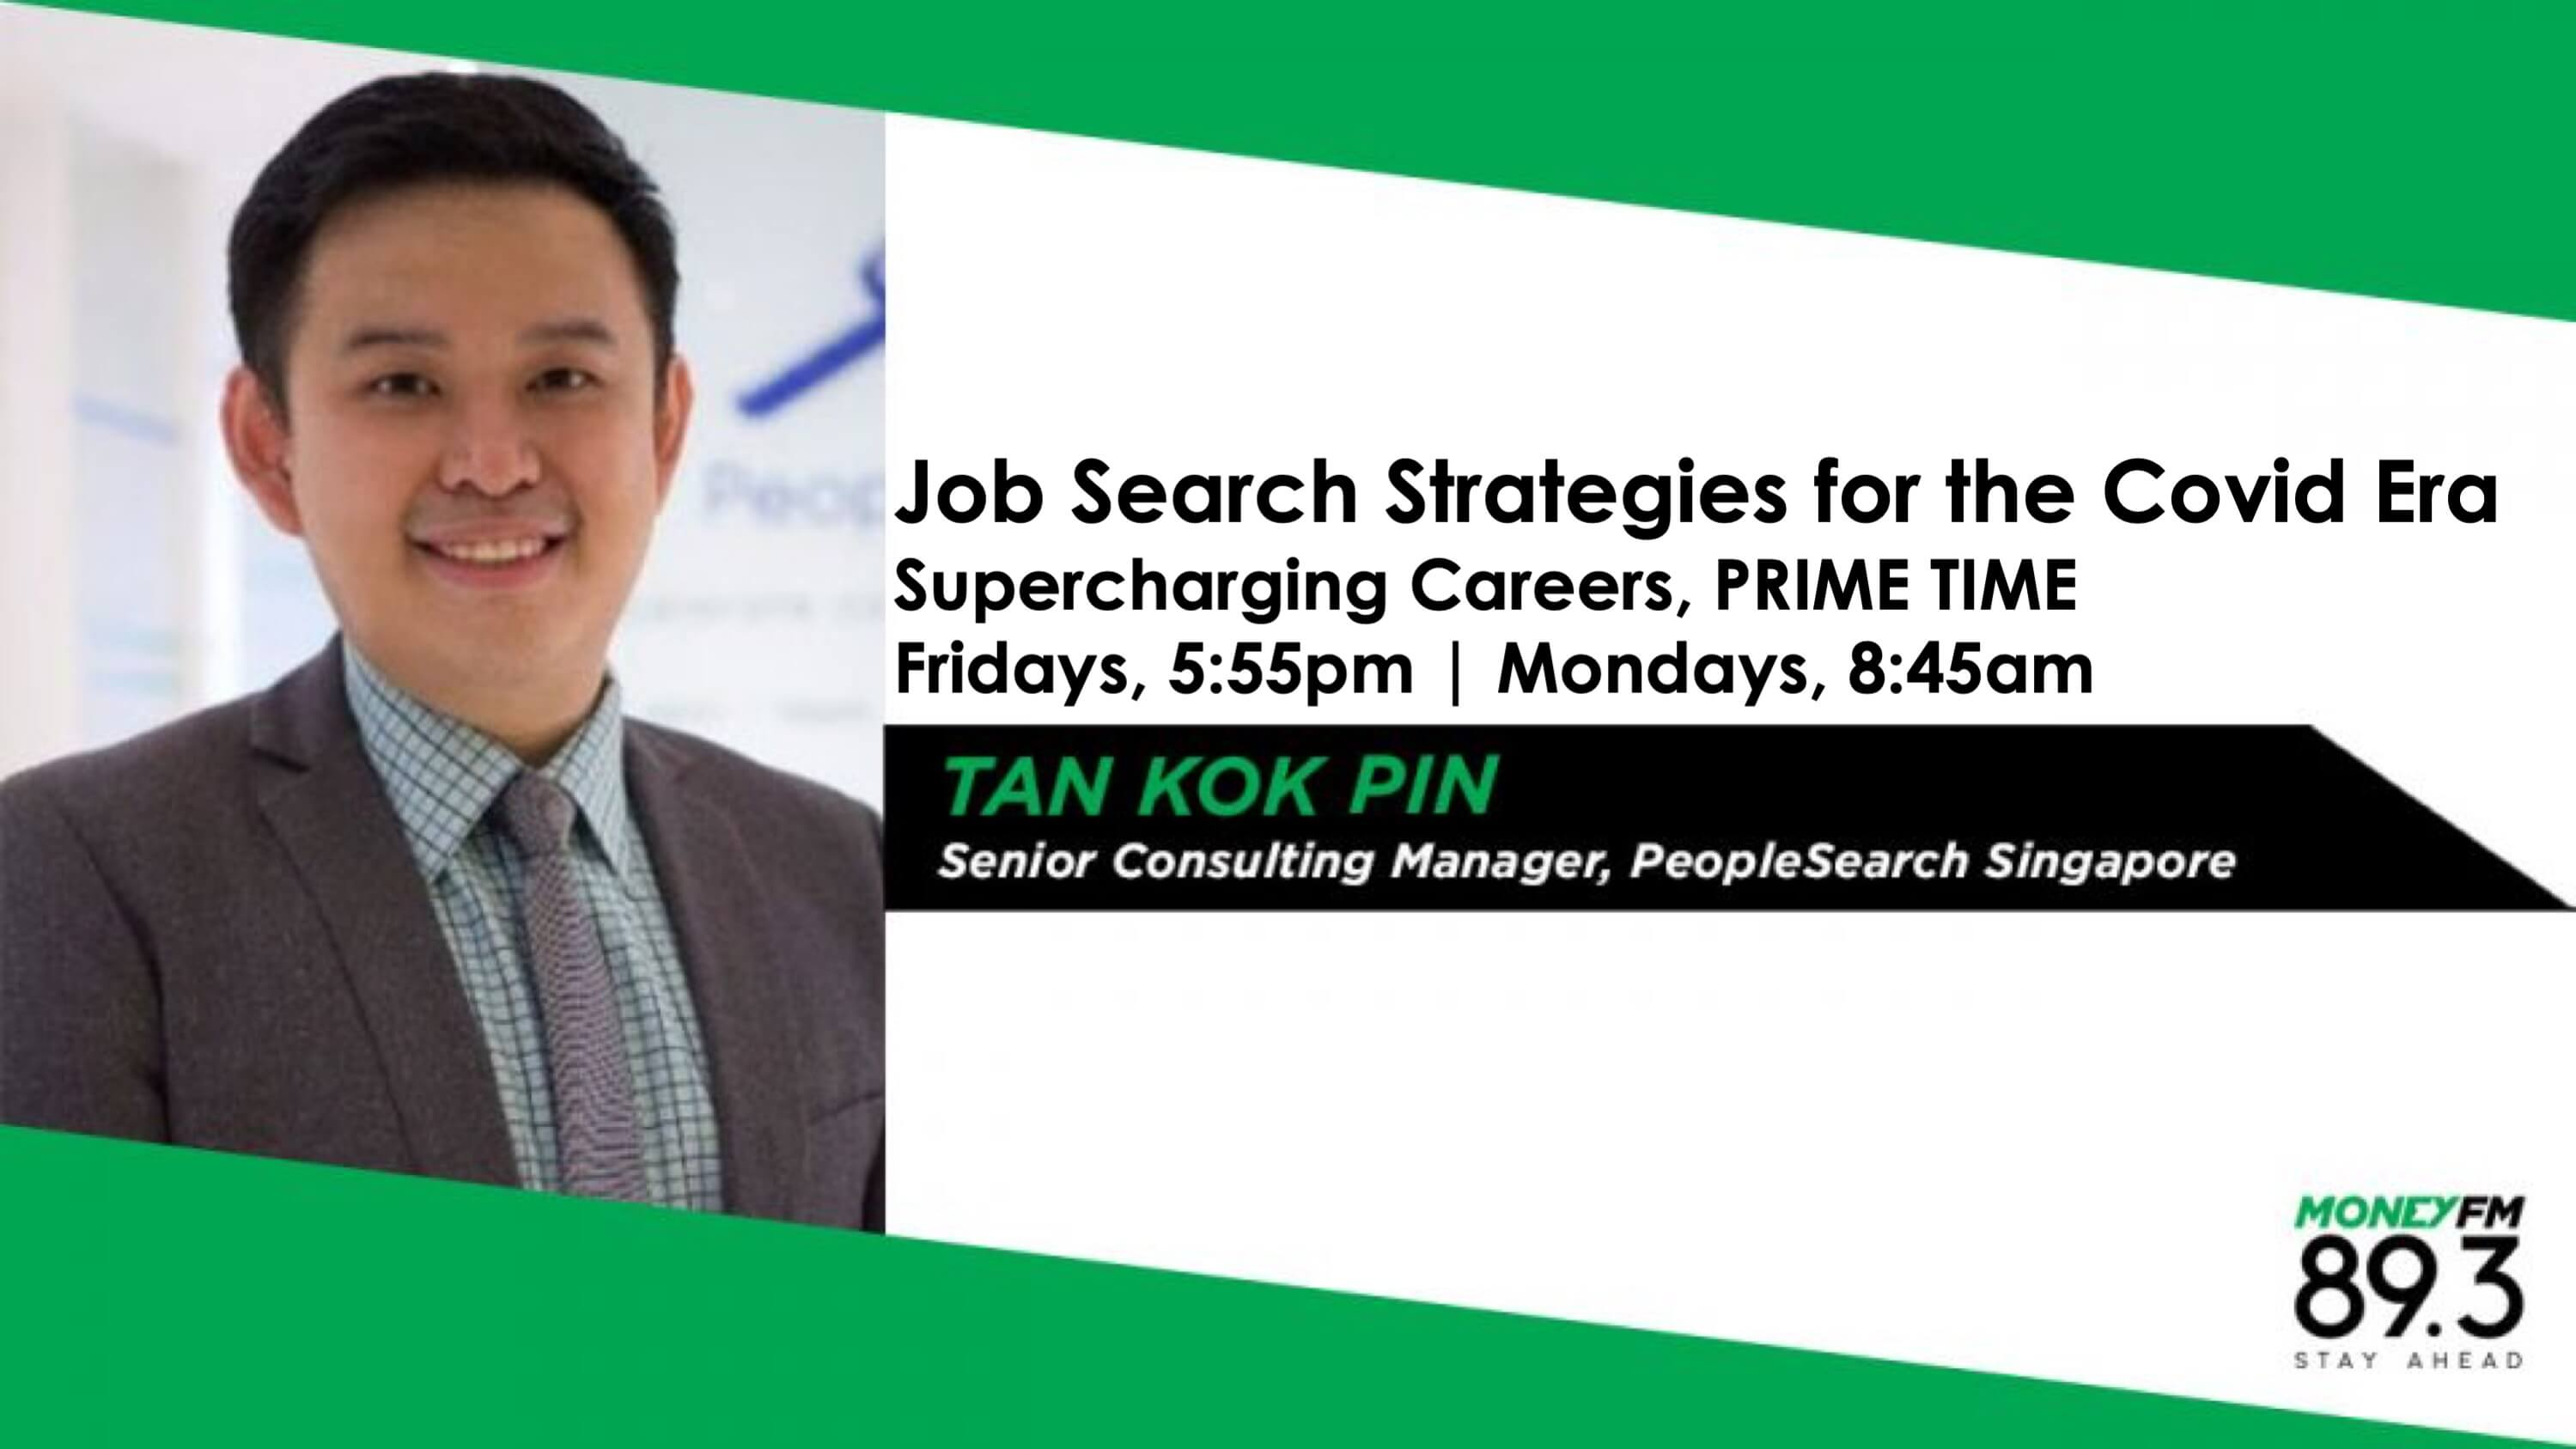 PeopleSearch Singapore's Tan Kok Pin on MONEY FM 89.3's Supercharging Careers banner